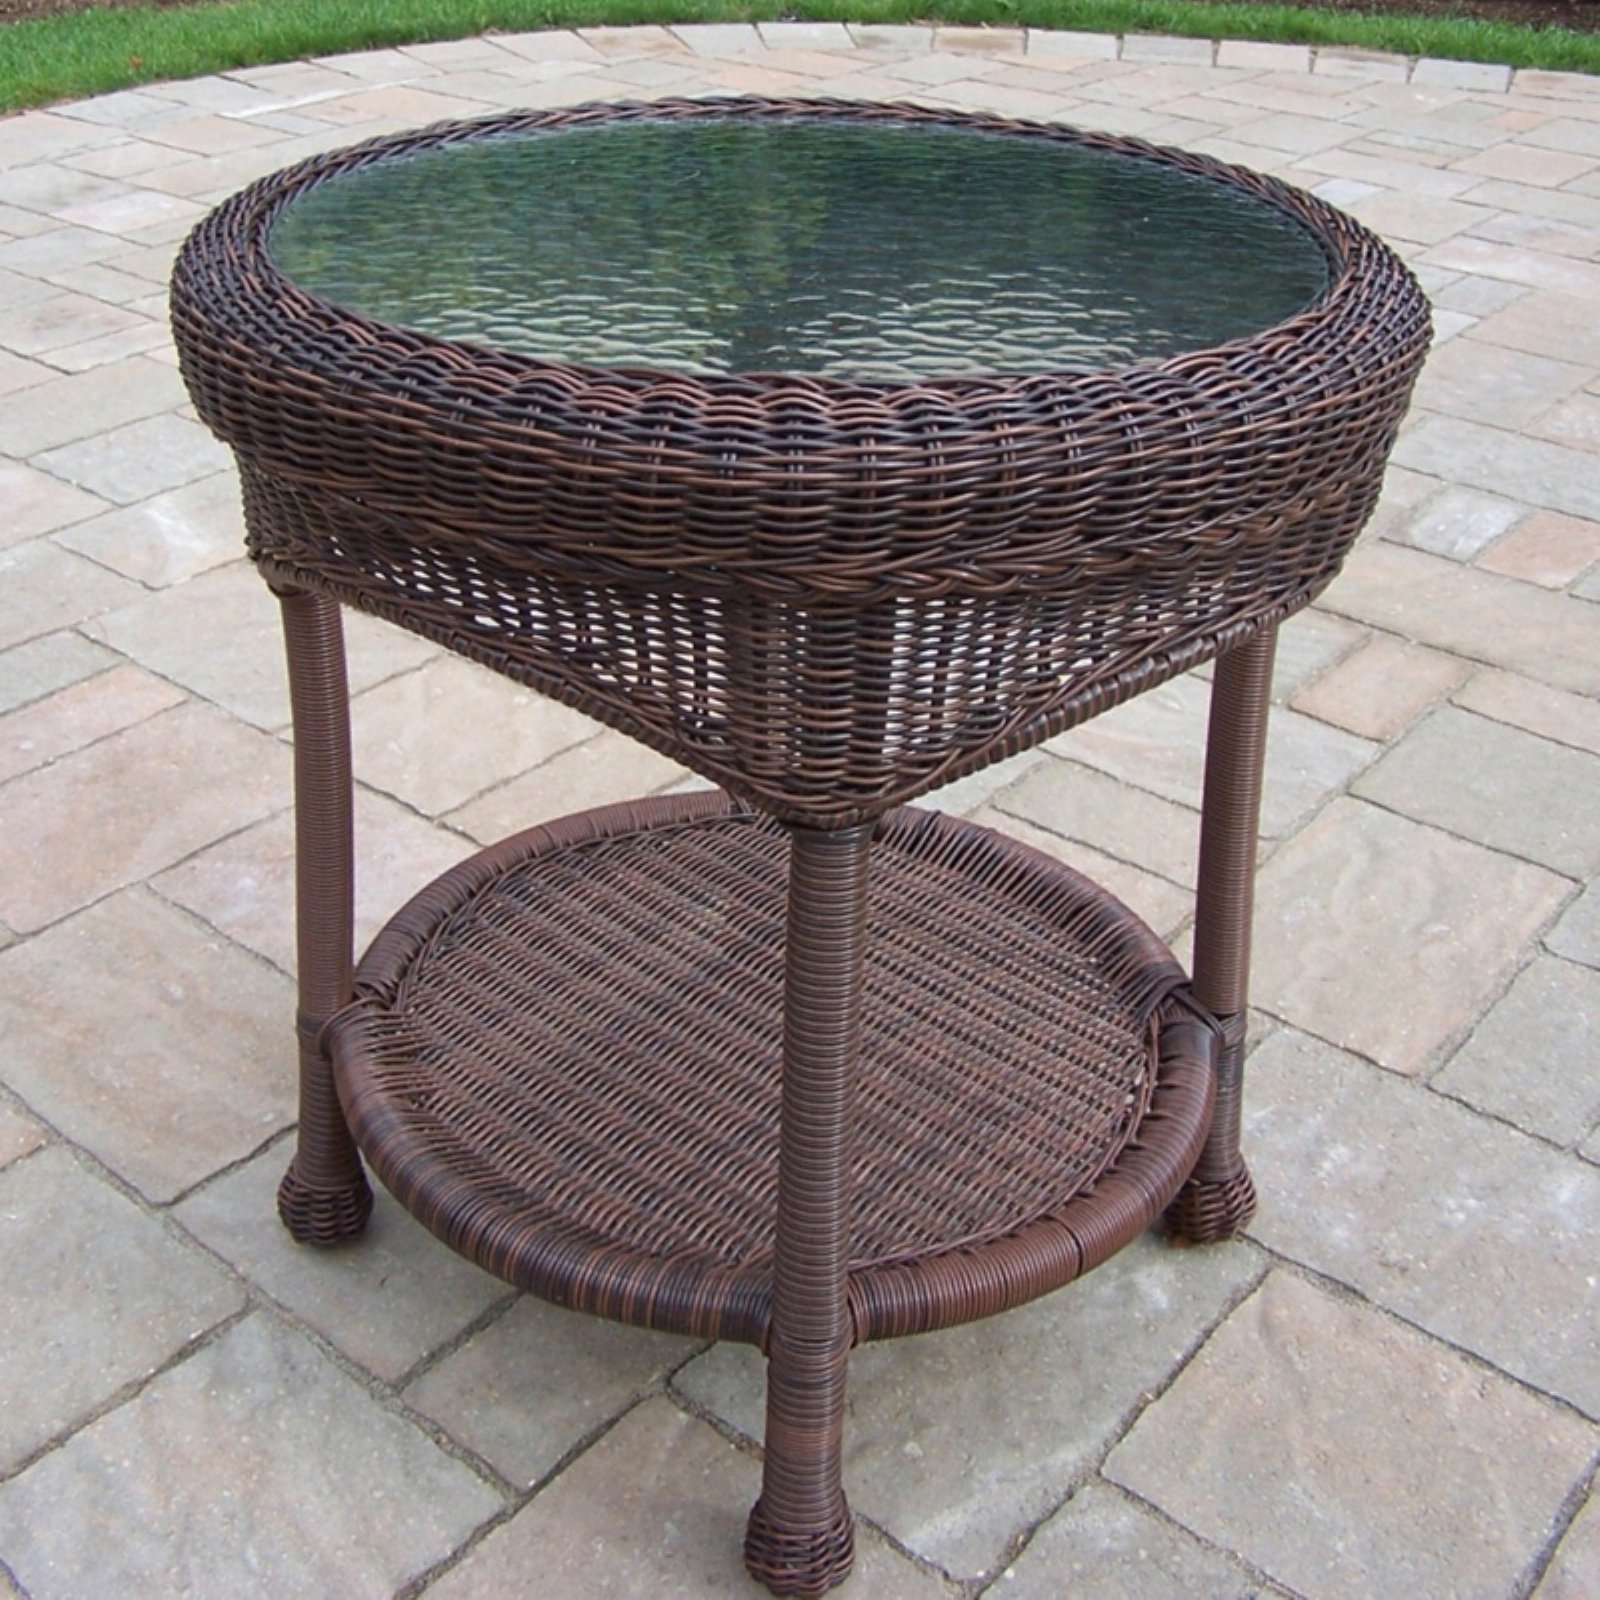 Oakland Living All-Weather Wicker End Table by Oakland Living